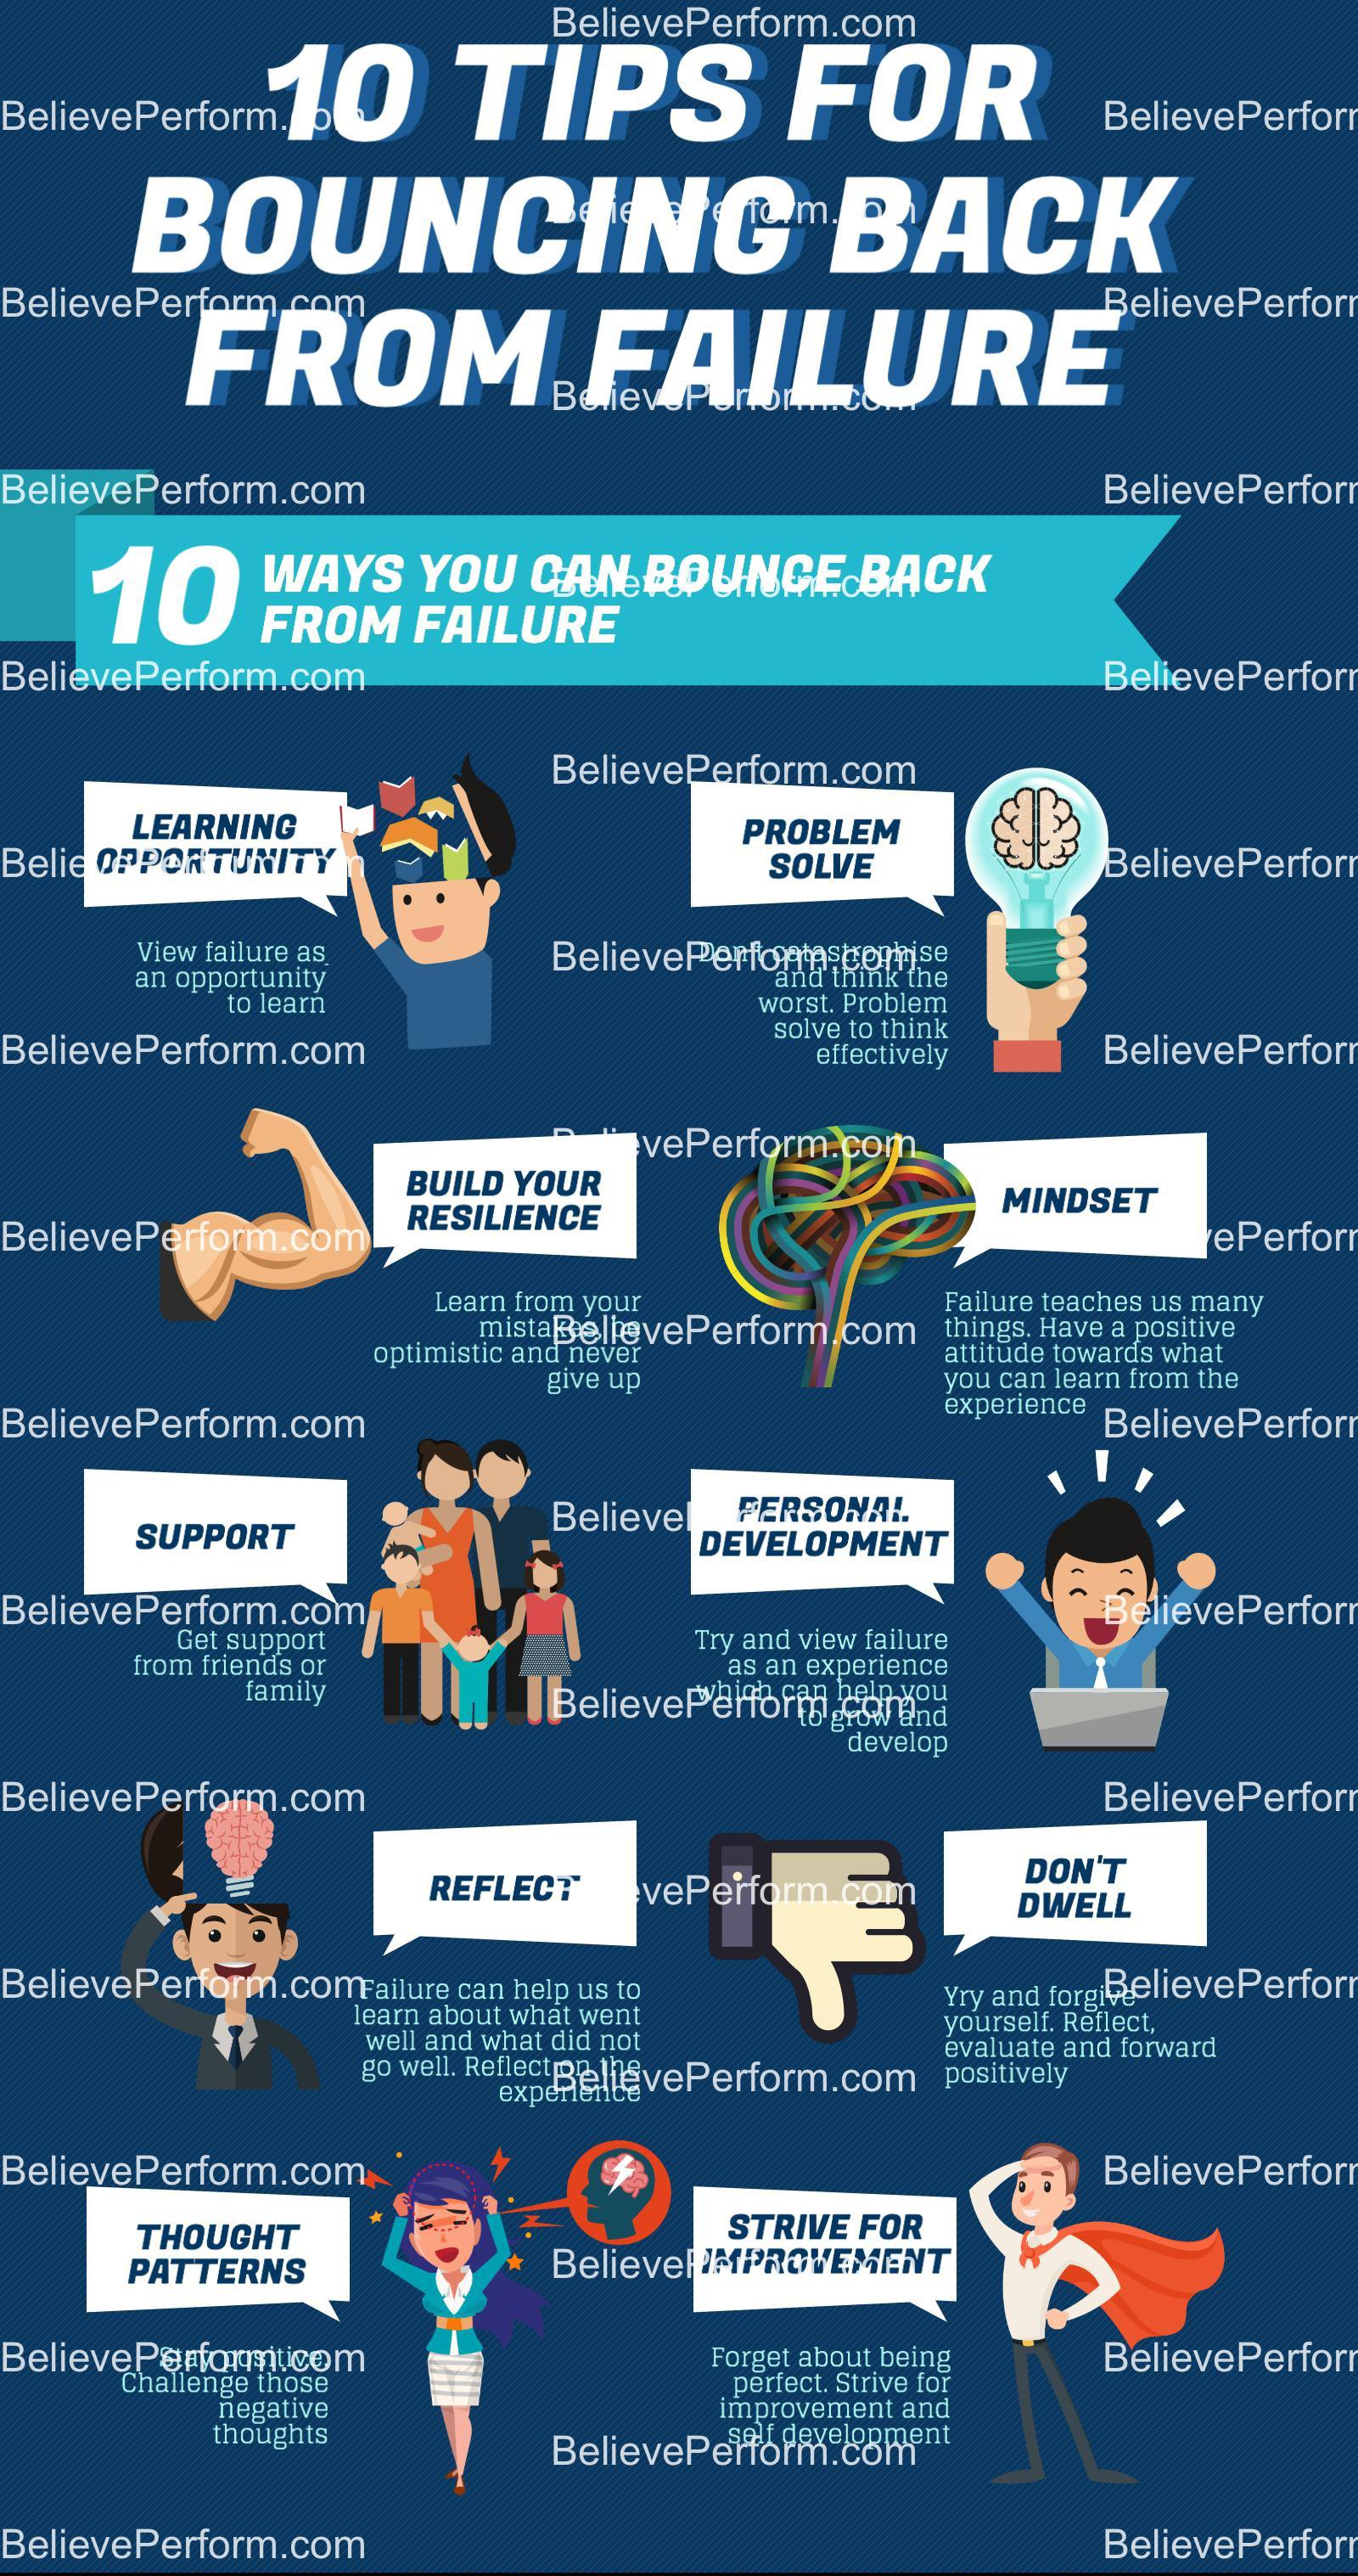 10 tips for bouncing back from failure